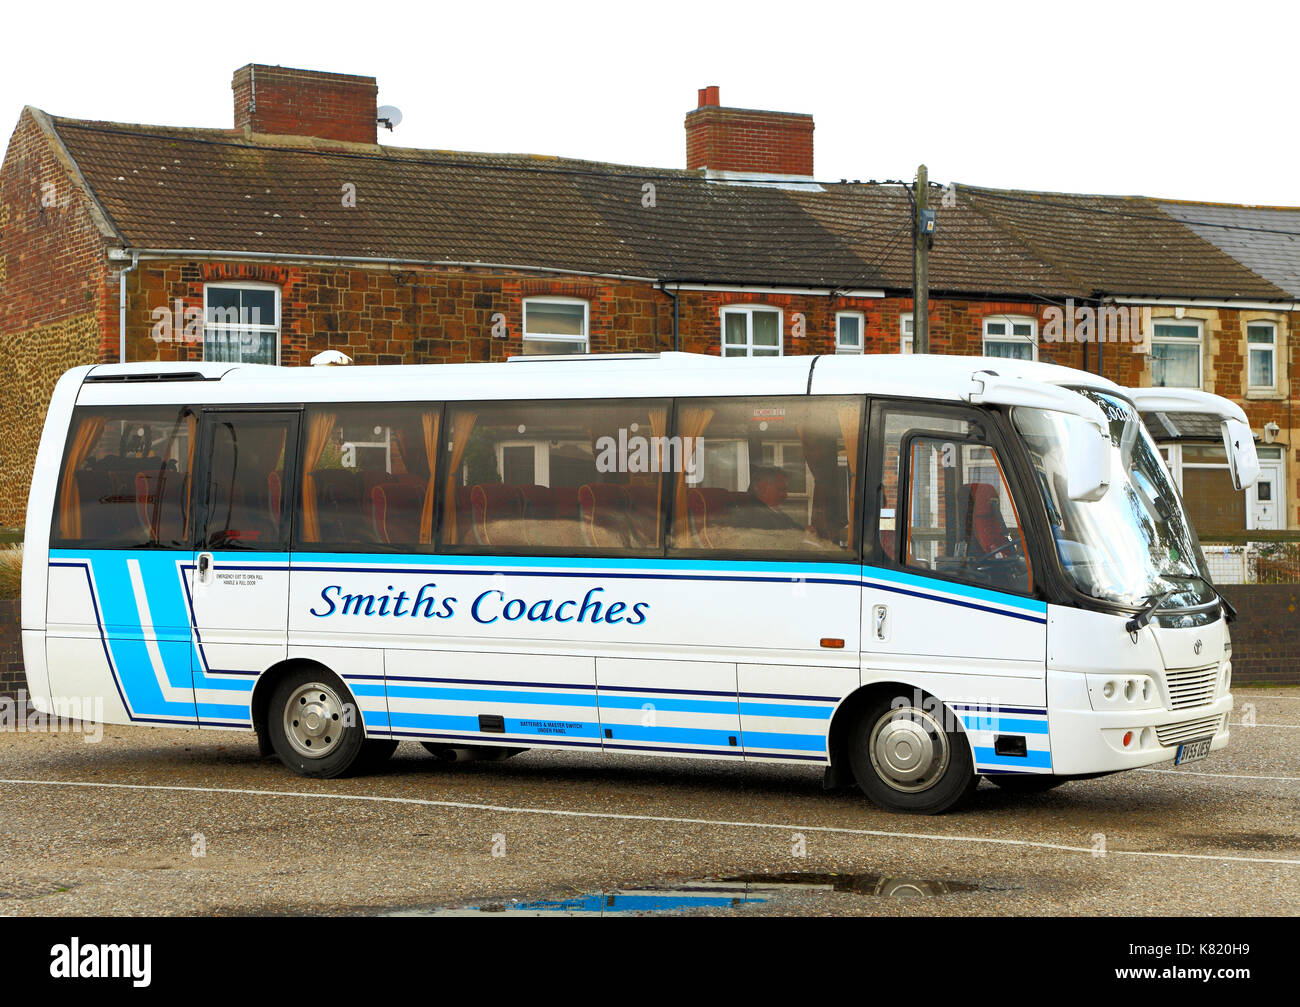 Smith's Coaches, coach, day trips, trip, excursion, excursions, holiday, holidays, transport company, companies, travel, England, UK - Stock Image